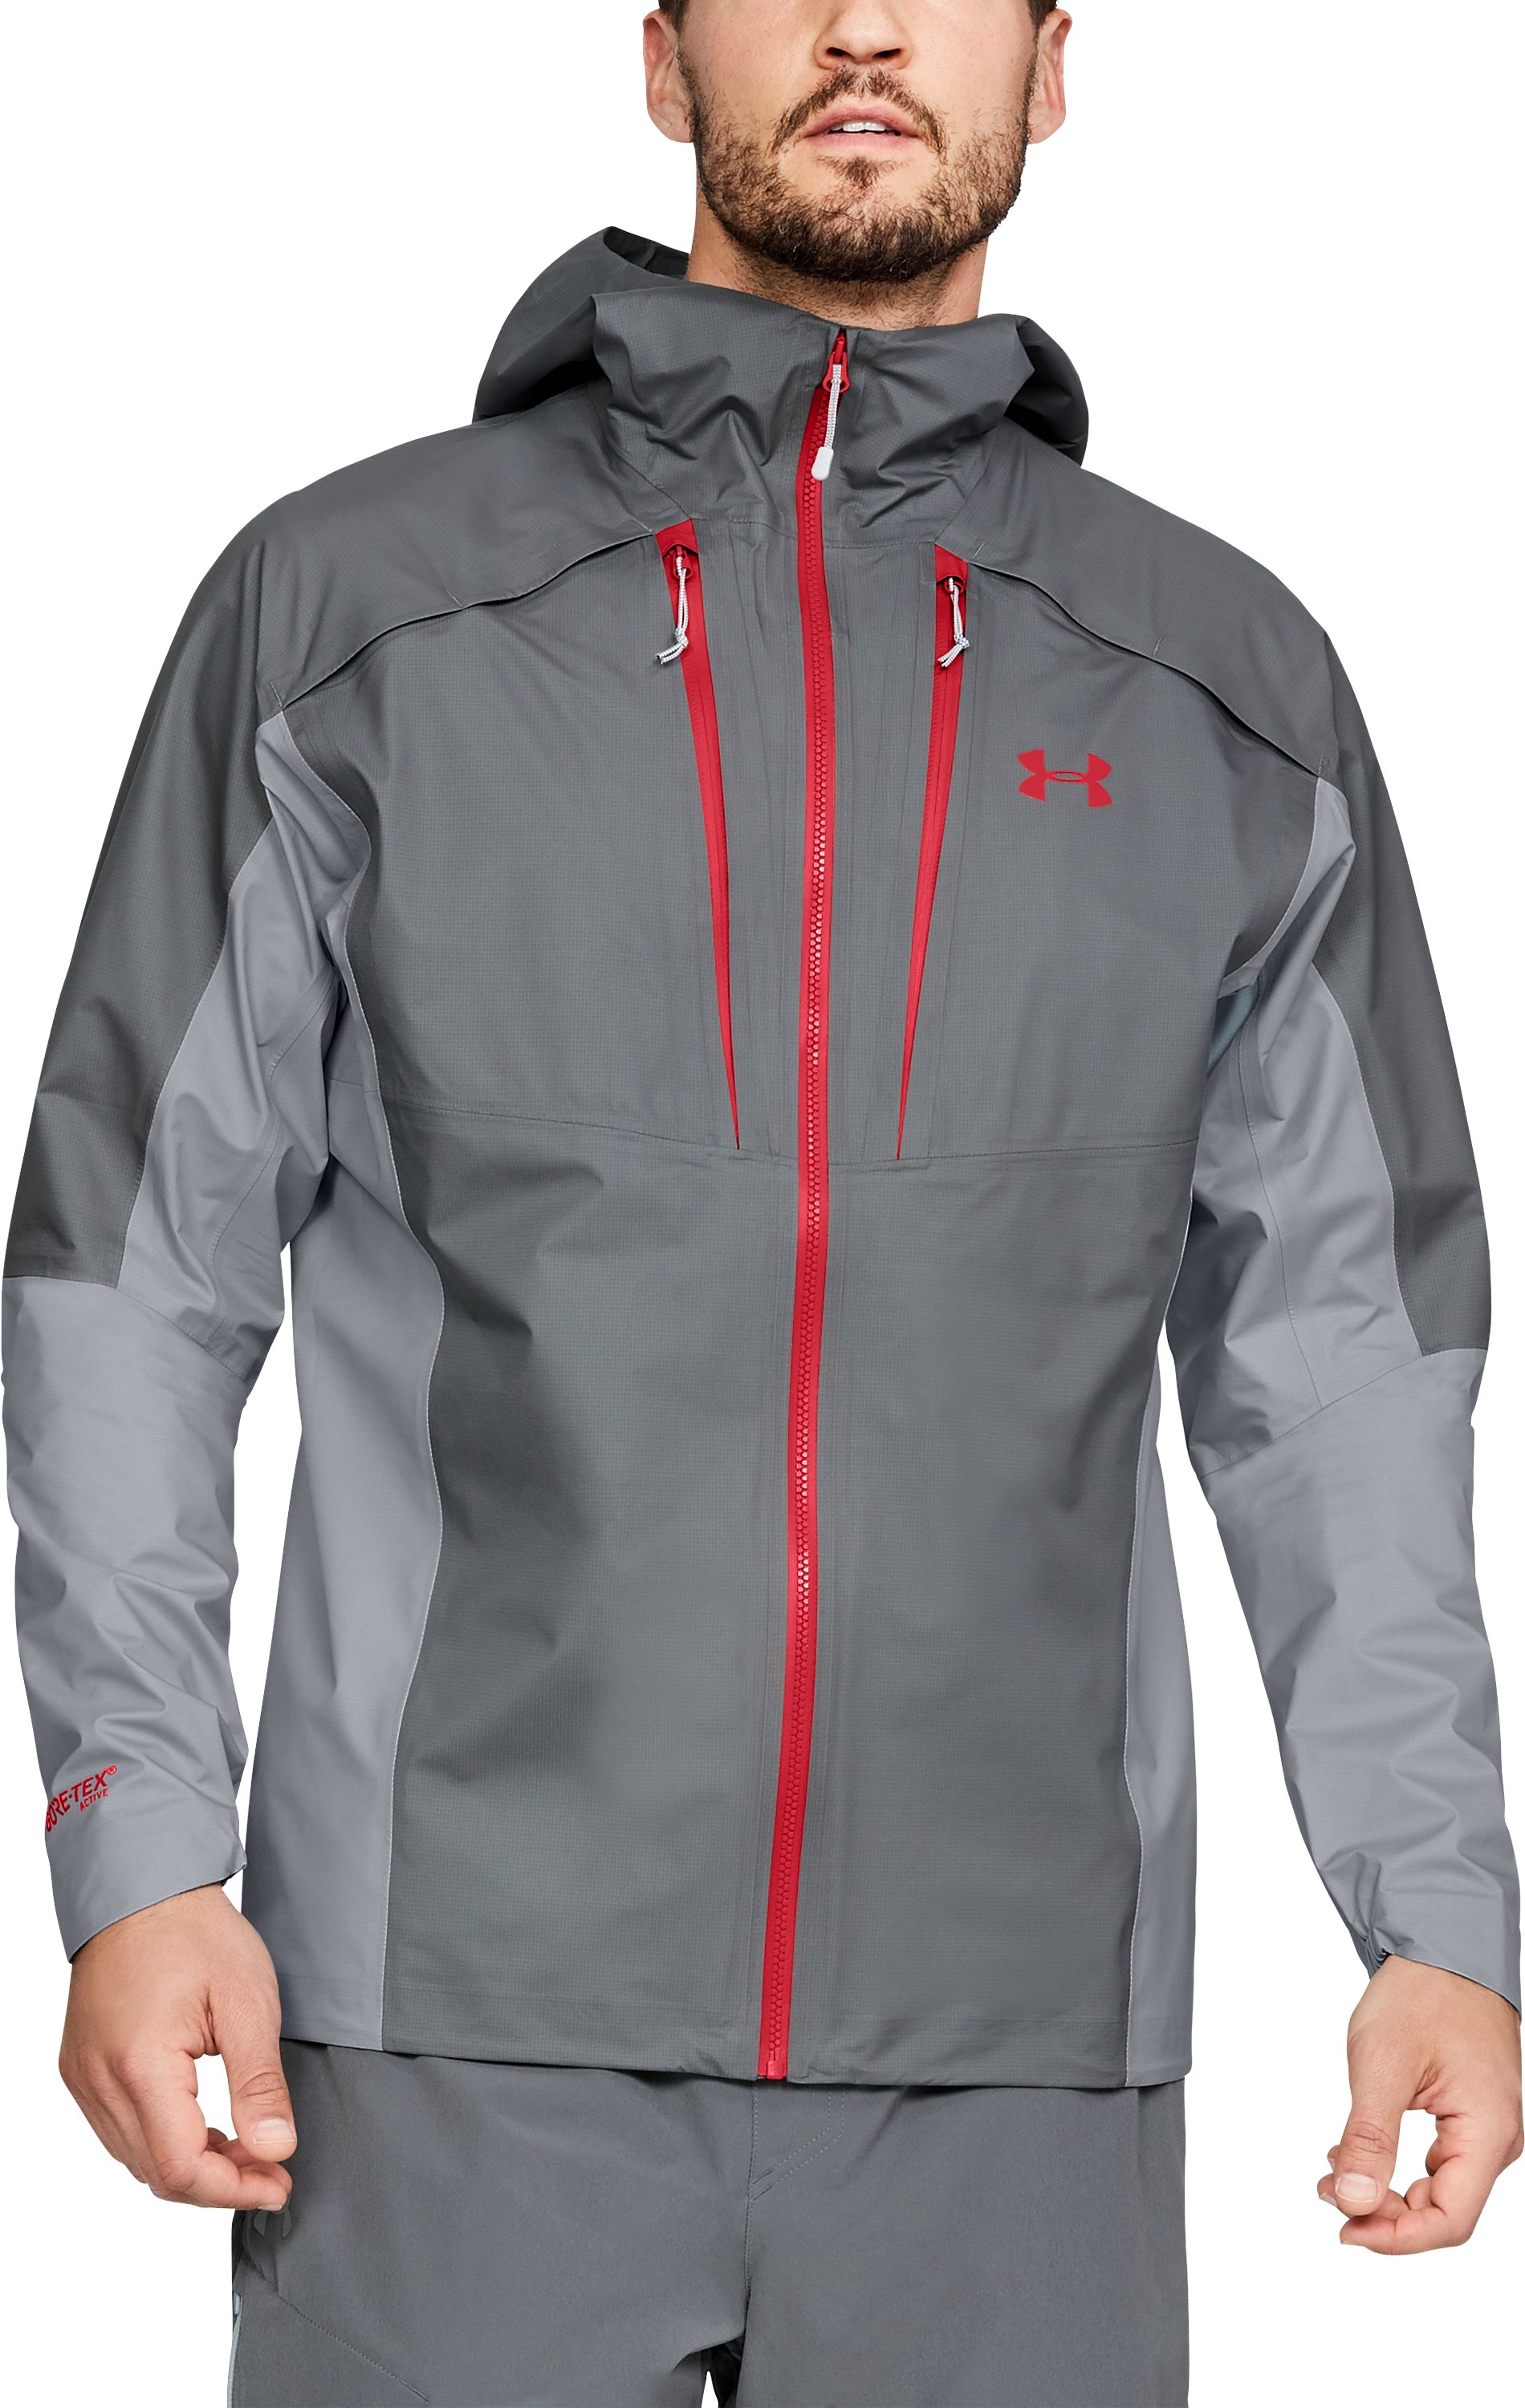 Men's UA Atlas GORE-TEX® Active Jacket 3 Colors $225.00 - $225.99